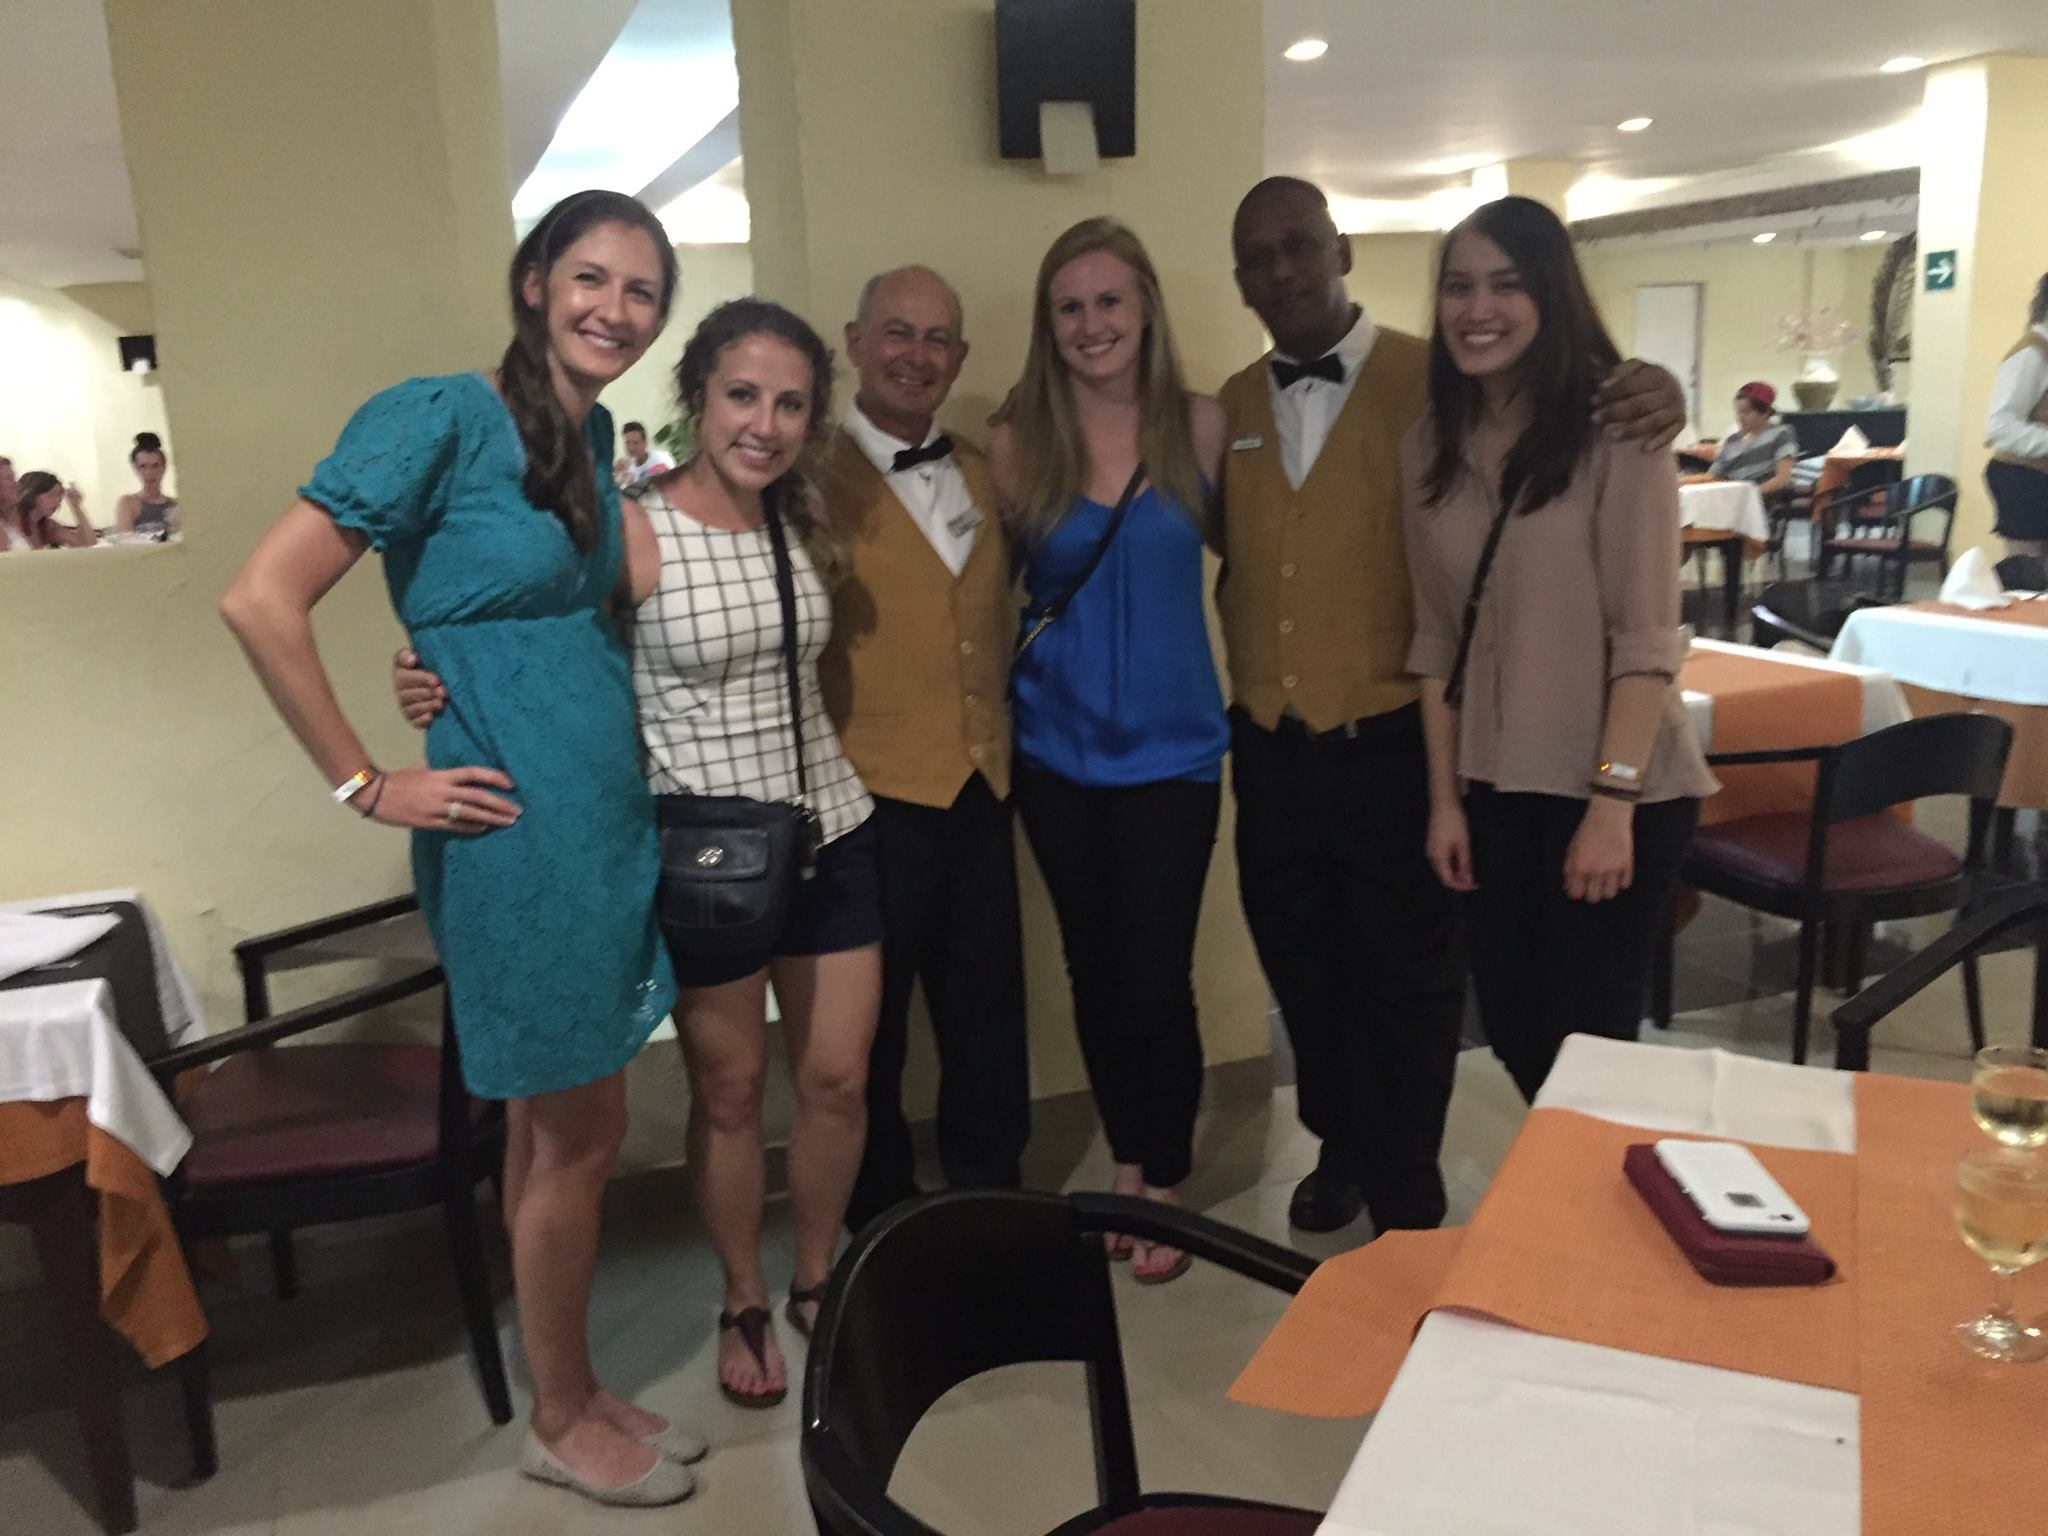 Chelsey with classmates on the Cuba Study Tour